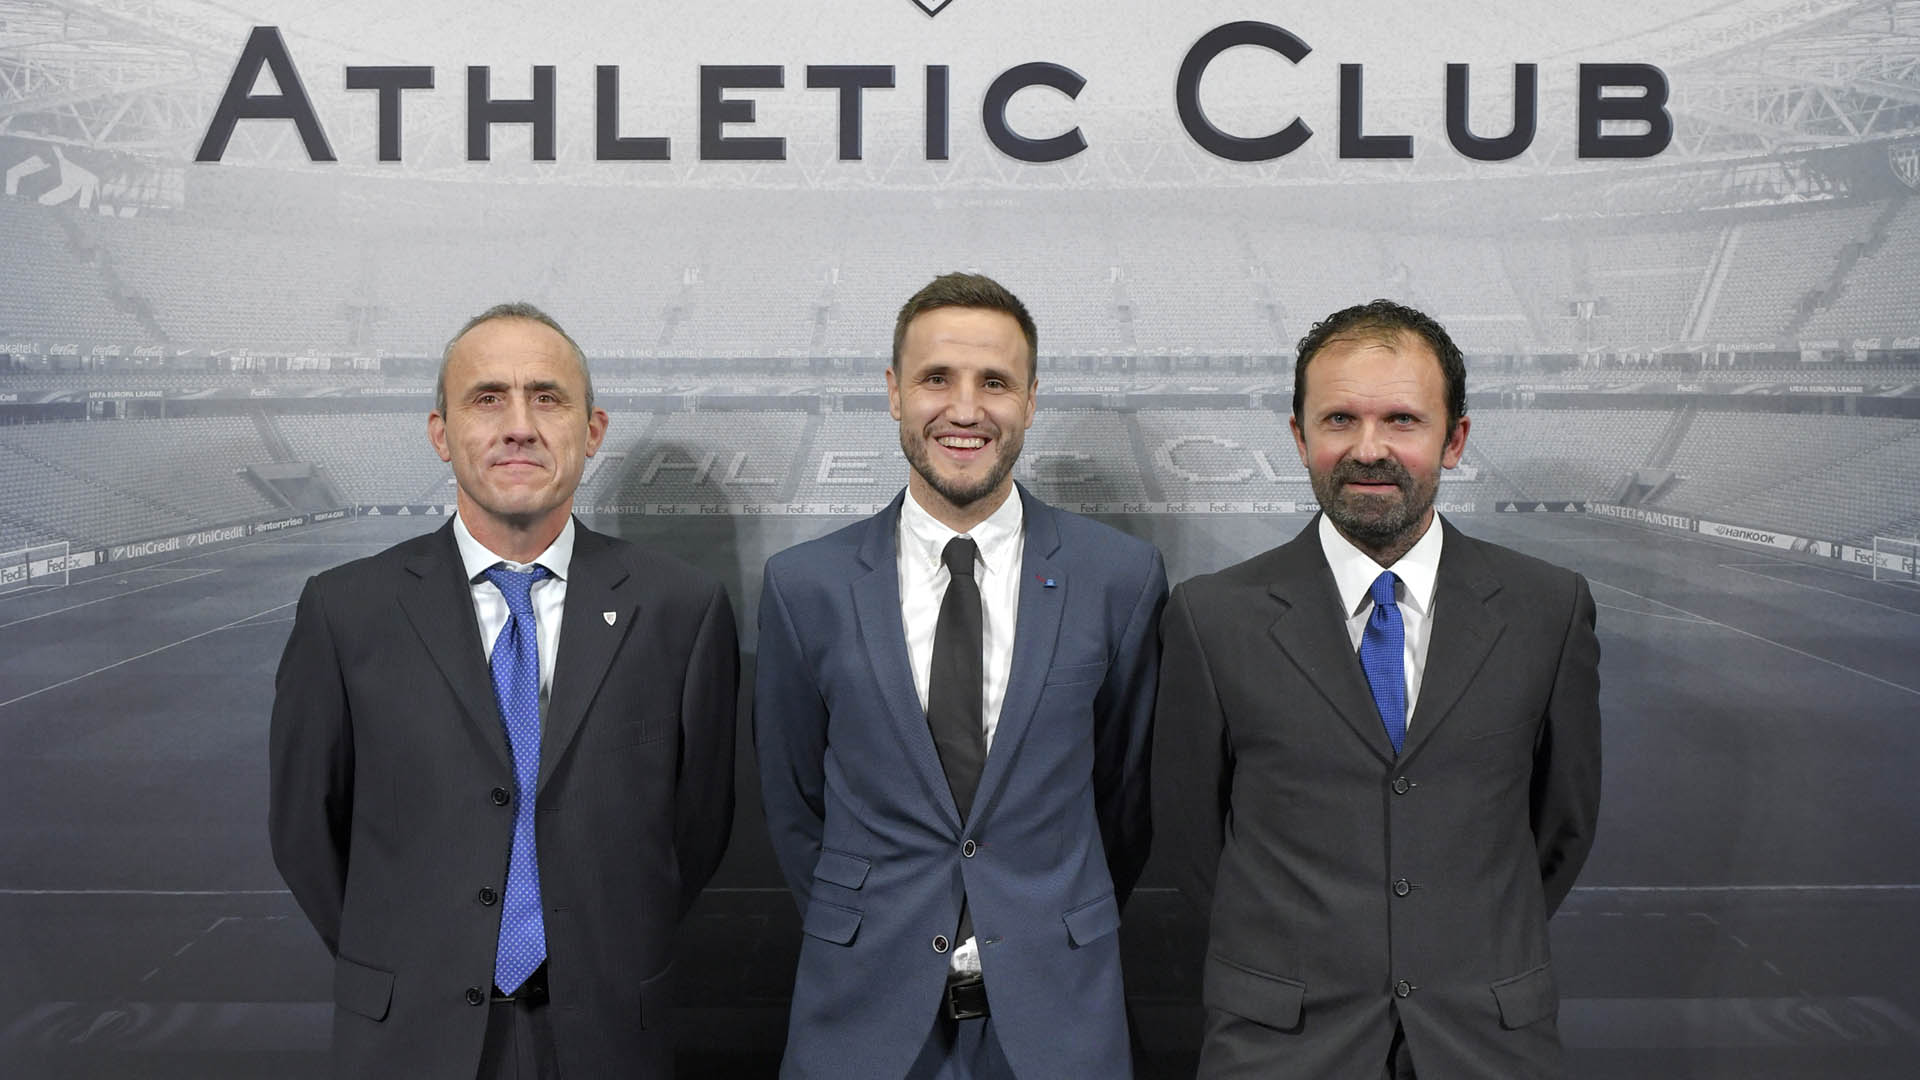 Members in Main Box for the match against Sevilla FC